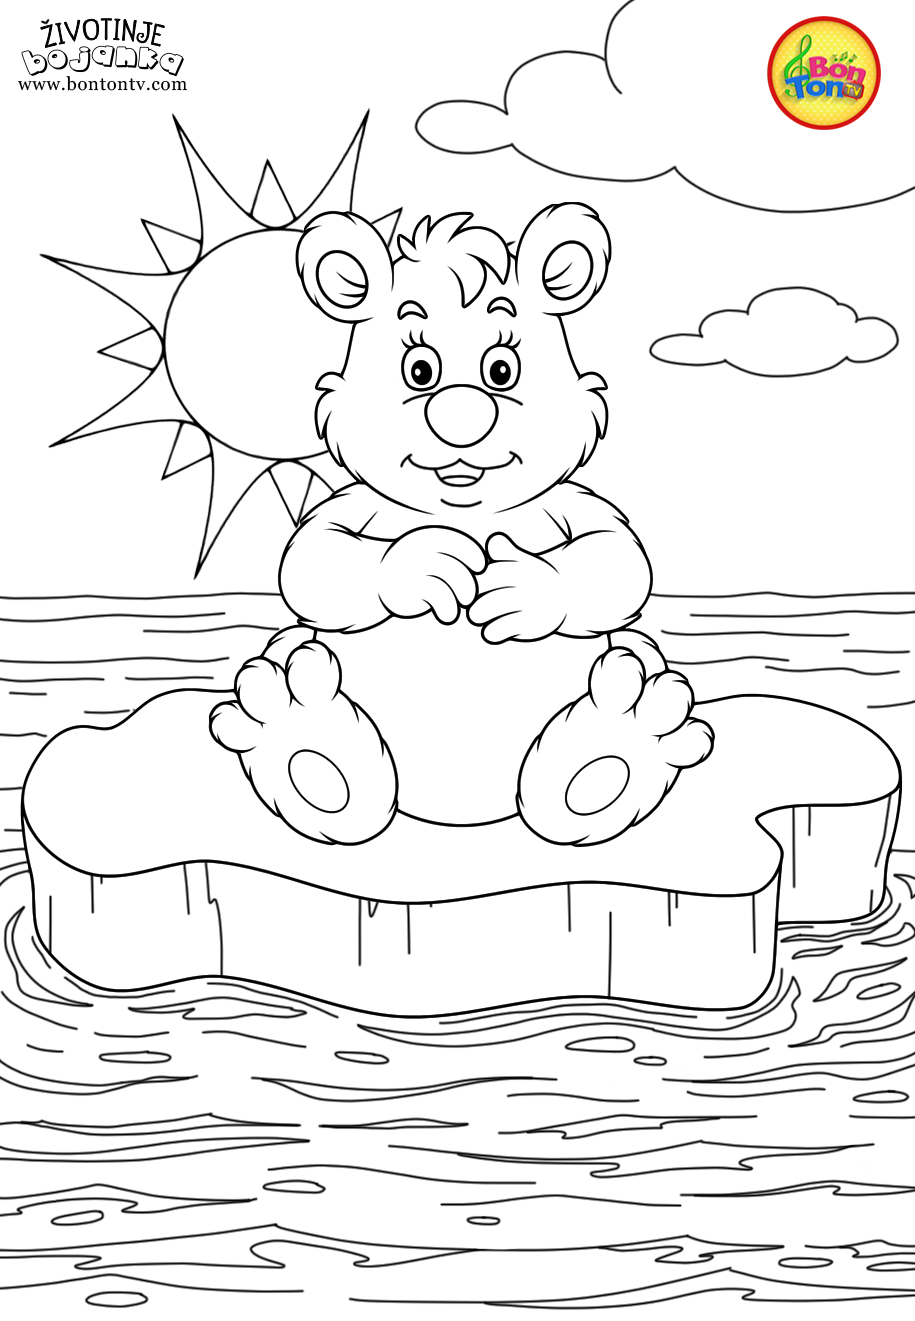 Animals Coloring Pages for Kids - Free Preschool Printables ...